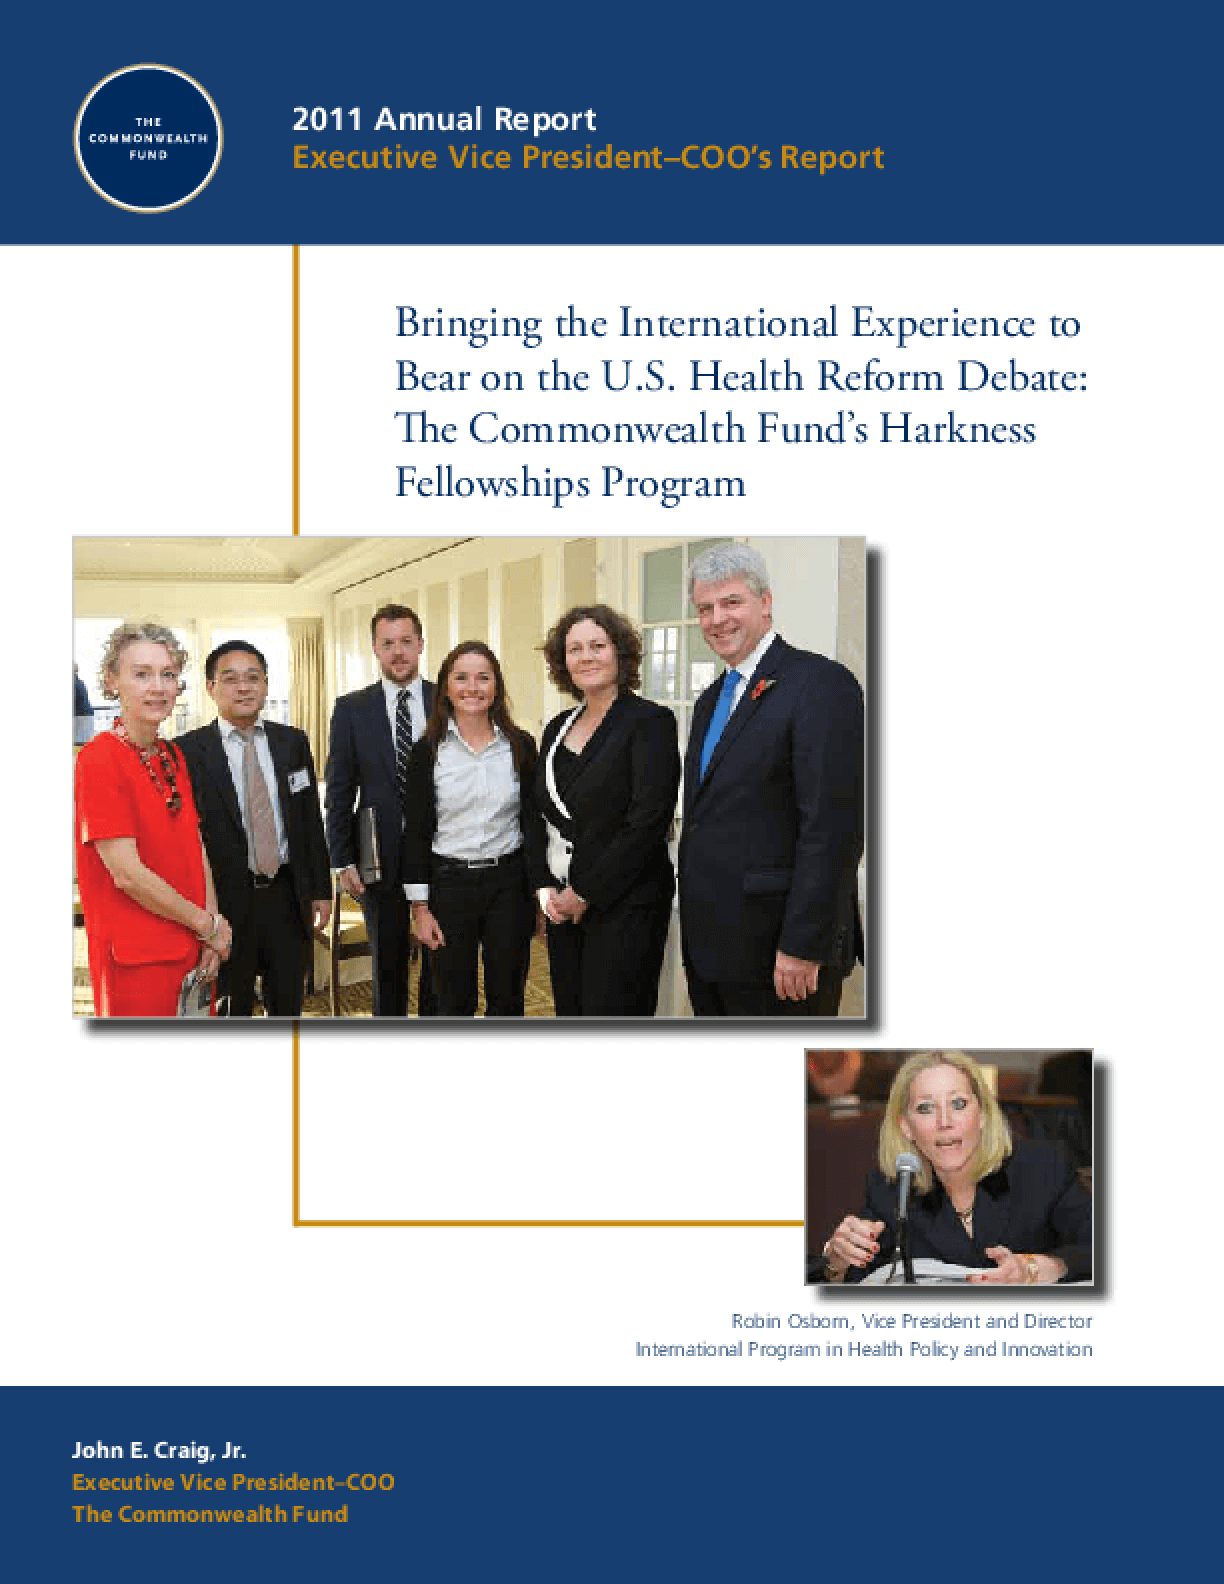 Bringing the International Experience to Bear on the U.S. Health Reform Debate: The Commonwealth Fund's Harkness Fellowships Program: 2011 Executive Vice President-COO's Report